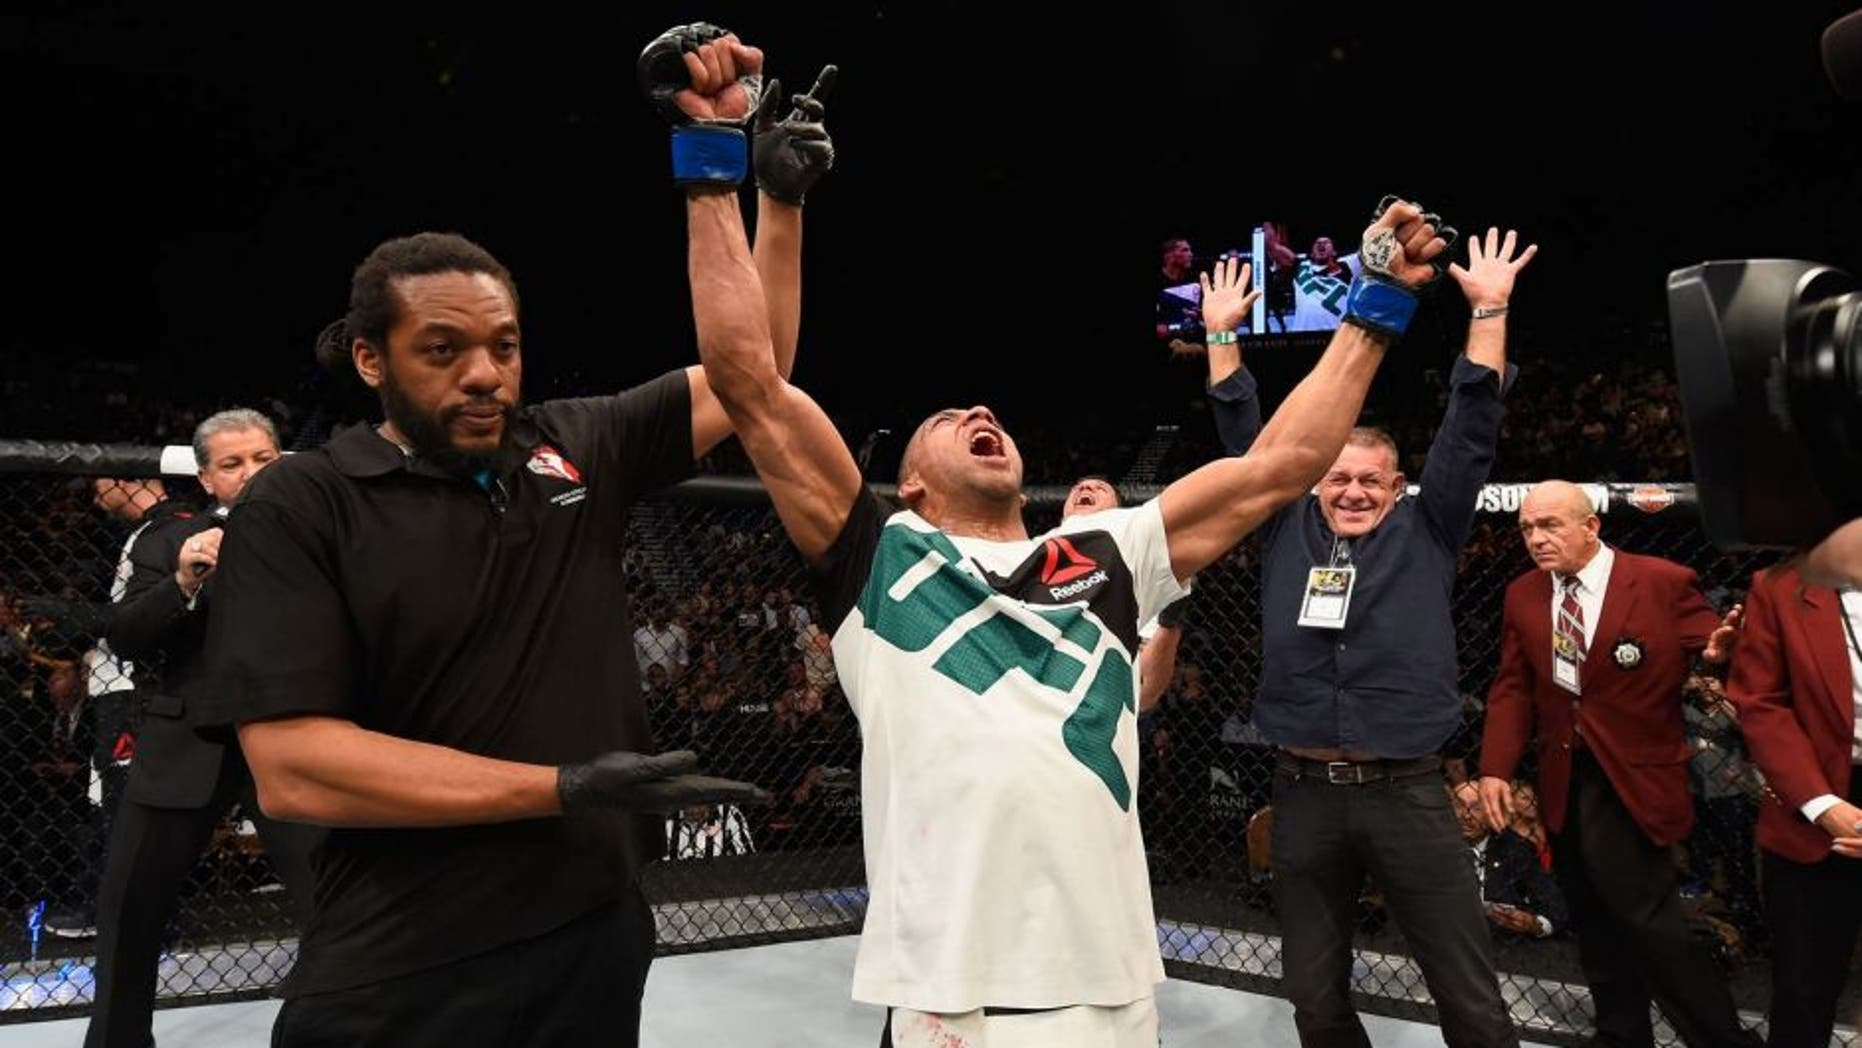 LAS VEGAS, NV - APRIL 23: Edson Barboza celebrates his victory over Anthony Pettis in their lightweight bout during the UFC 197 event inside MGM Grand Garden Arena on April 23, 2016 in Las Vegas, Nevada. (Photo by Josh Hedges/Zuffa LLC/Zuffa LLC via Getty Images)